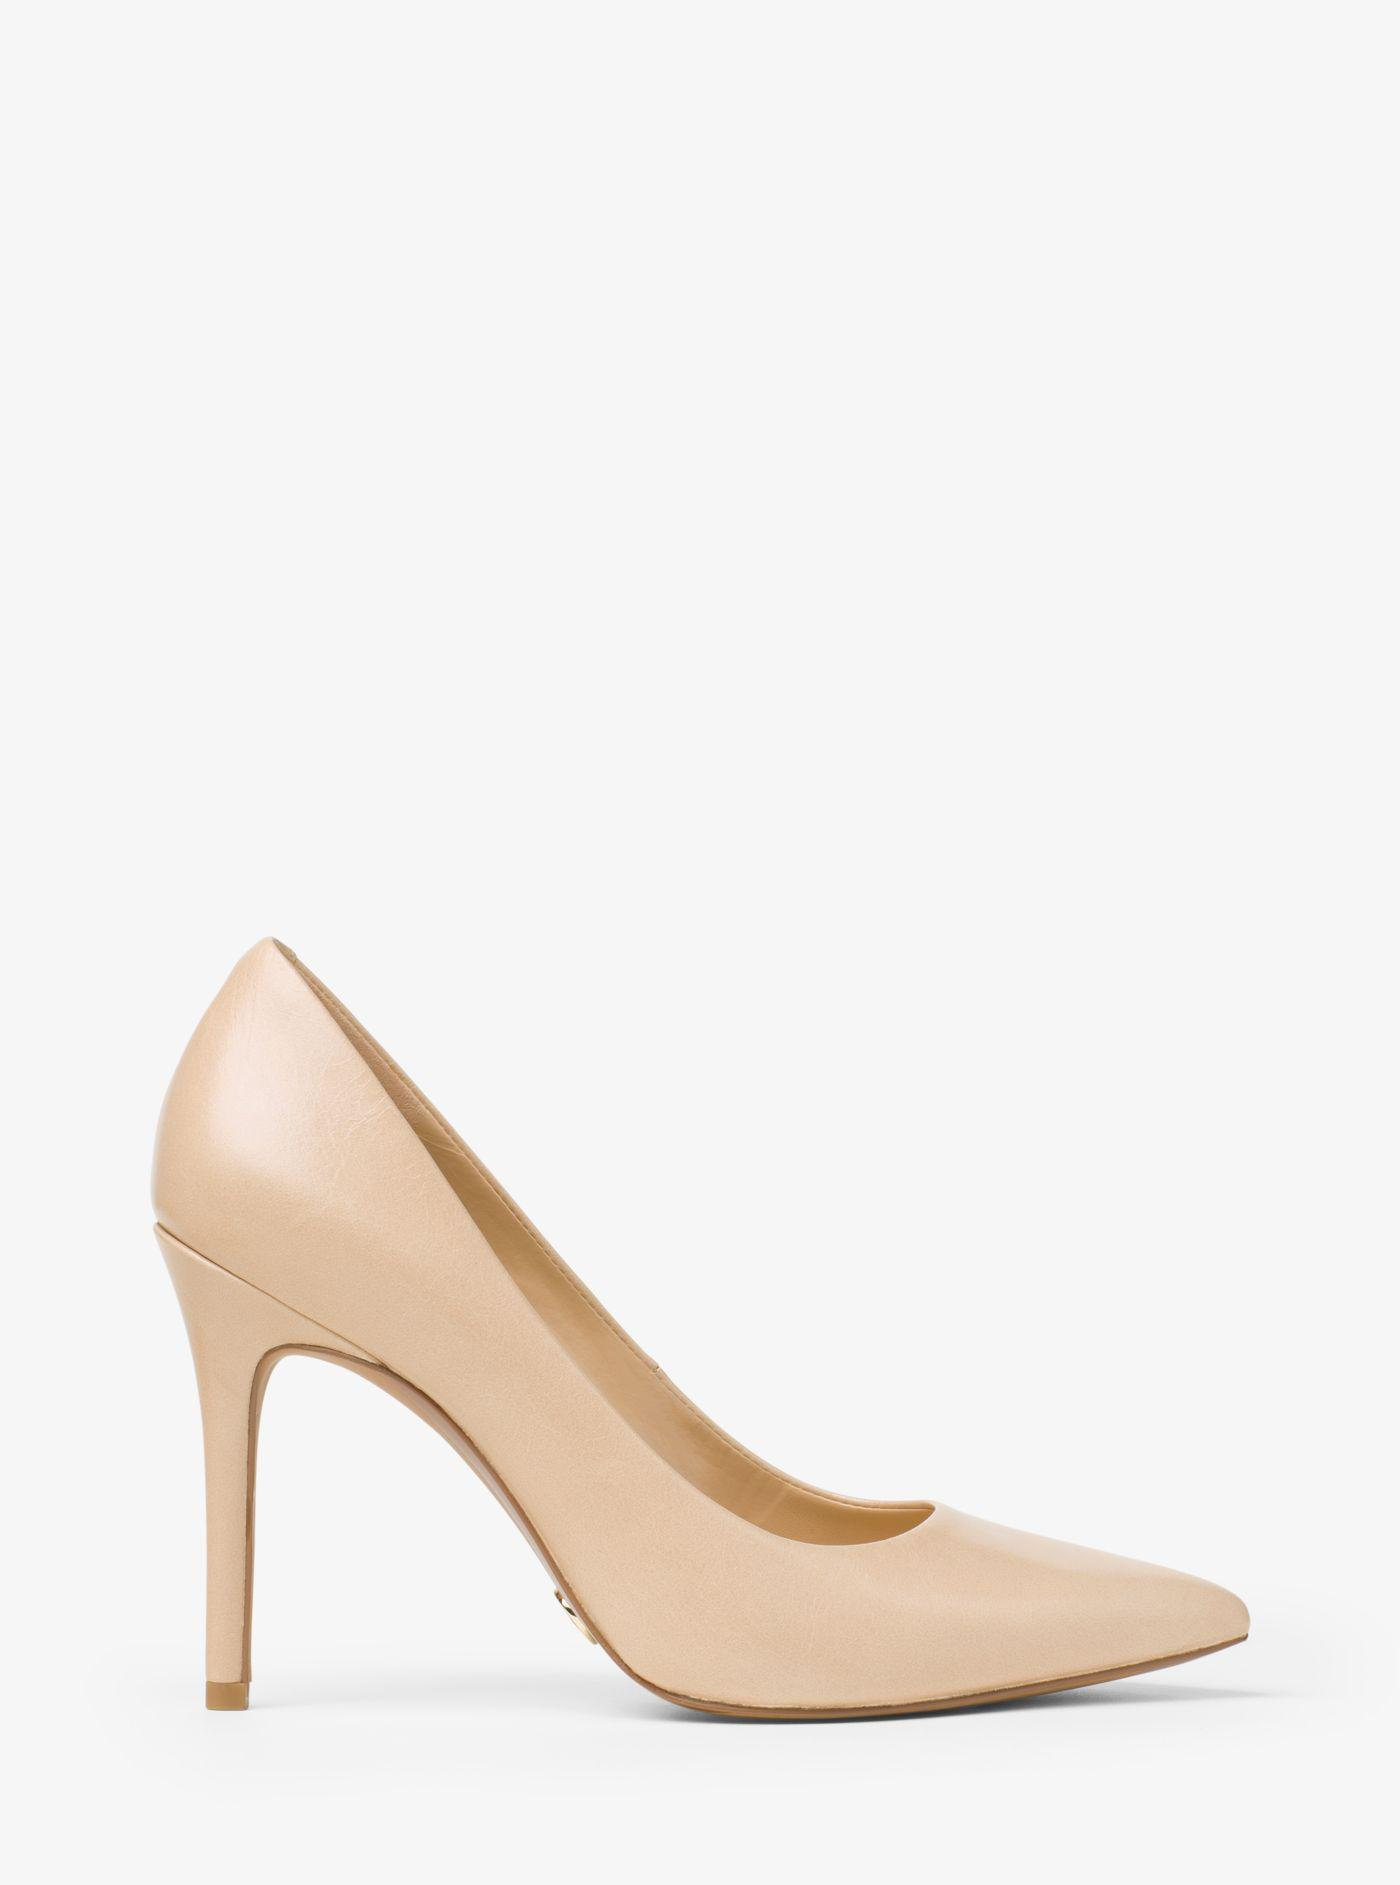 5e43f5aa474 Lyst - Michael Kors Claire Leather Pump in Natural